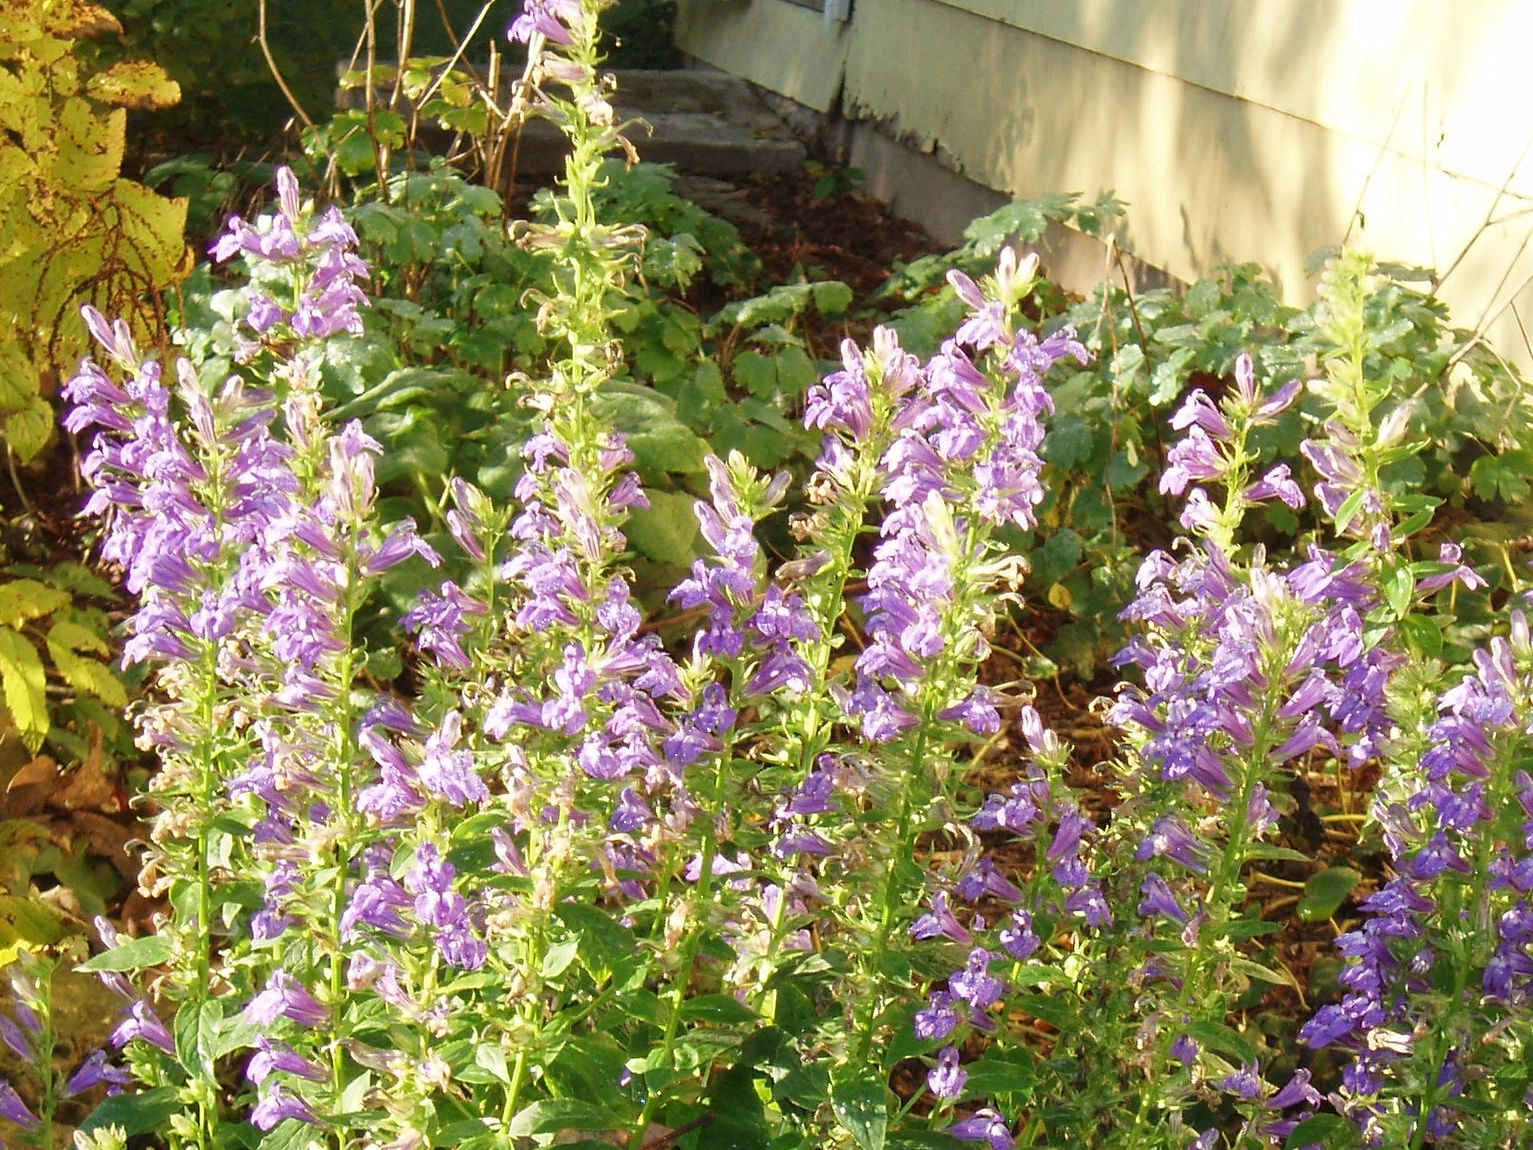 "{""blocks"":[{""key"":""enh5h"",""text"":""Lobelia siphilitica Great Blue Lobelia Blue Cardinal Flower - potted plants email john@easywildflowers.com"",""type"":""unstyled"",""depth"":0,""inlineStyleRanges"":[],""entityRanges"":[],""data"":{}}],""entityMap"":{}}"